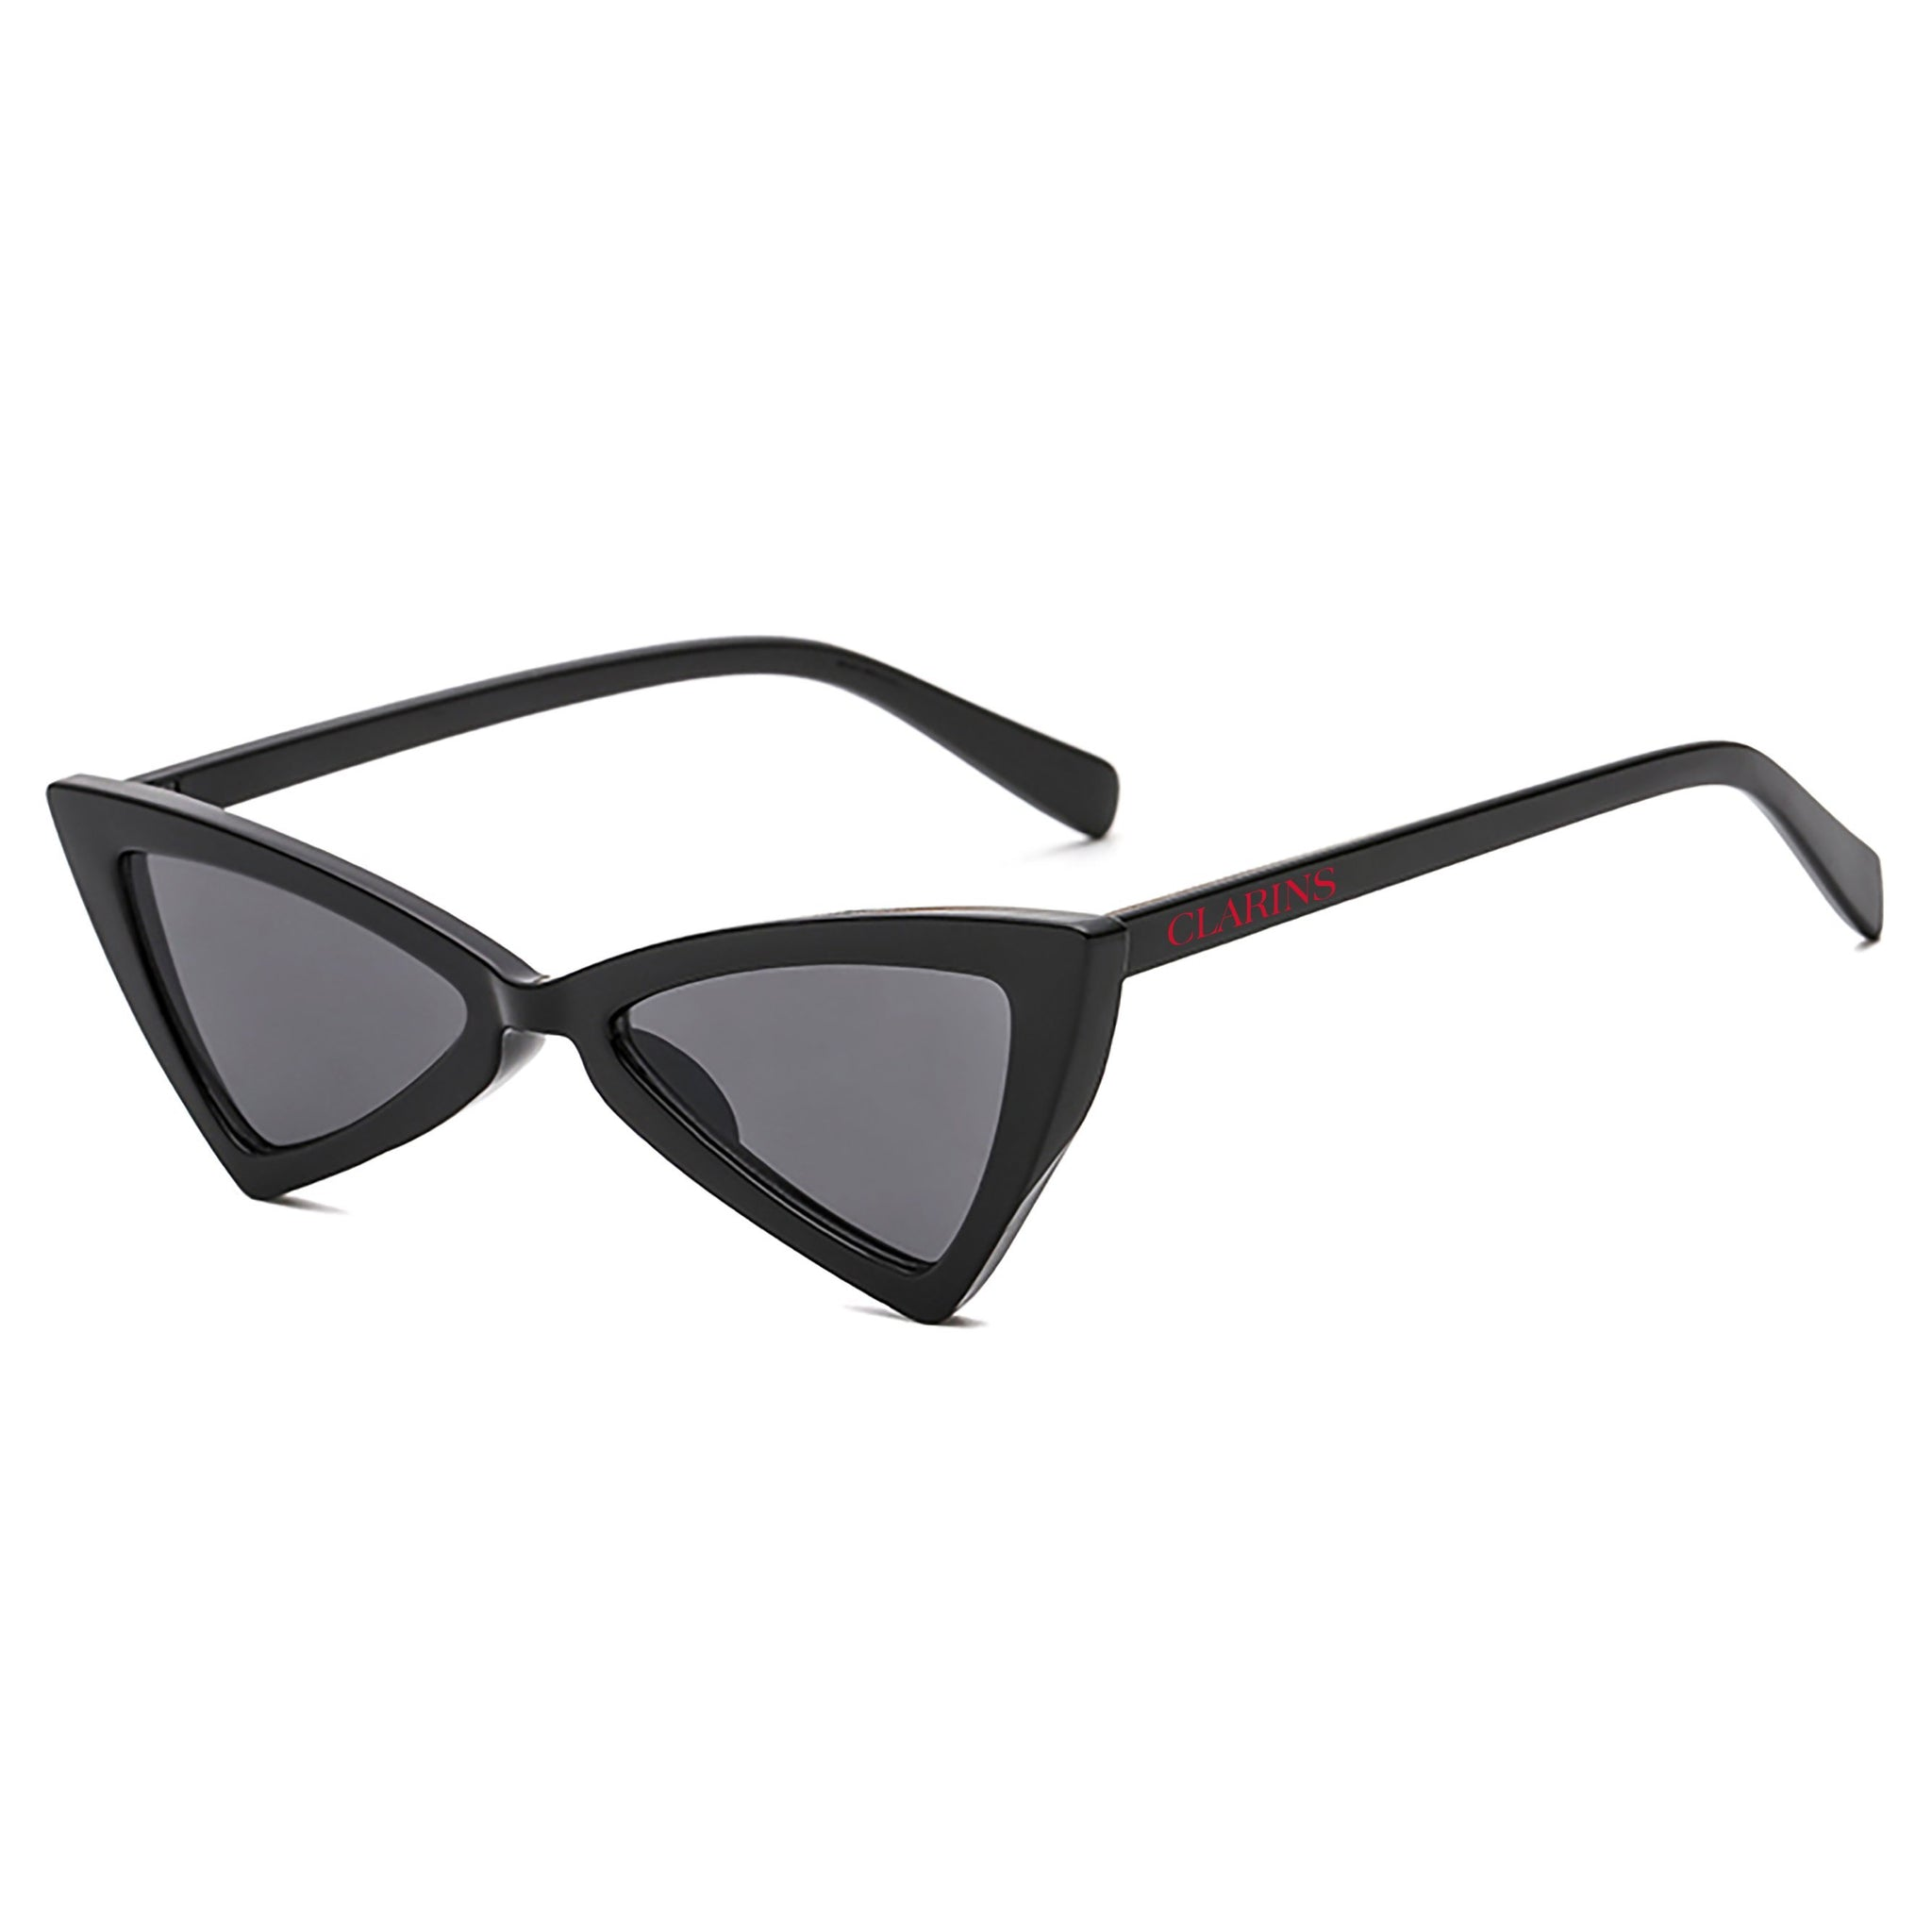 ROBIN - Fashion Promotional Sunglasses w/1 color imprint